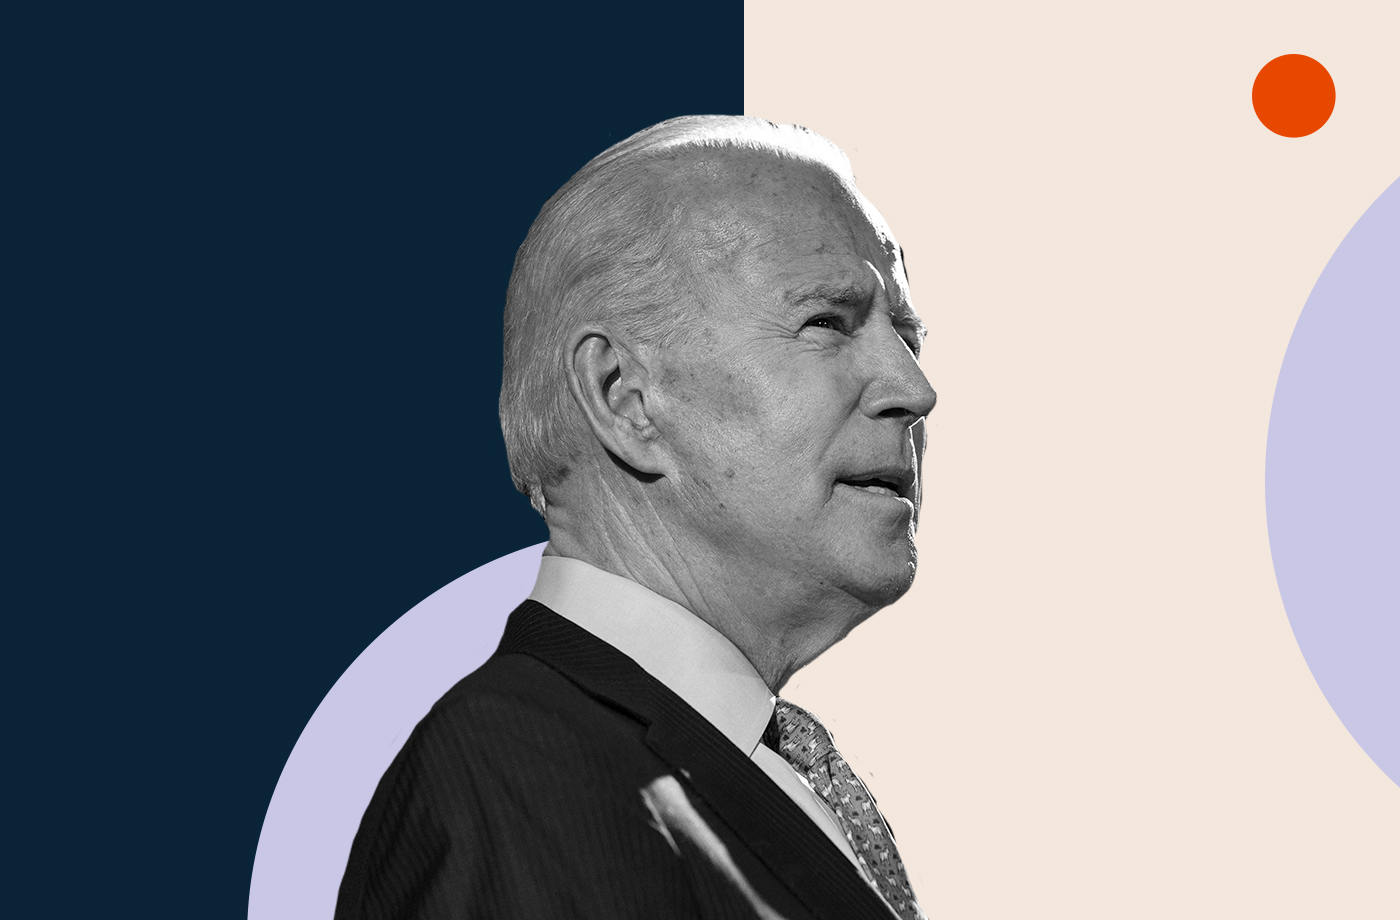 Thumbnail for 5 Things You Need To Know About Joe Biden's $775 Billion Plan To Help Working Parents and Caregivers